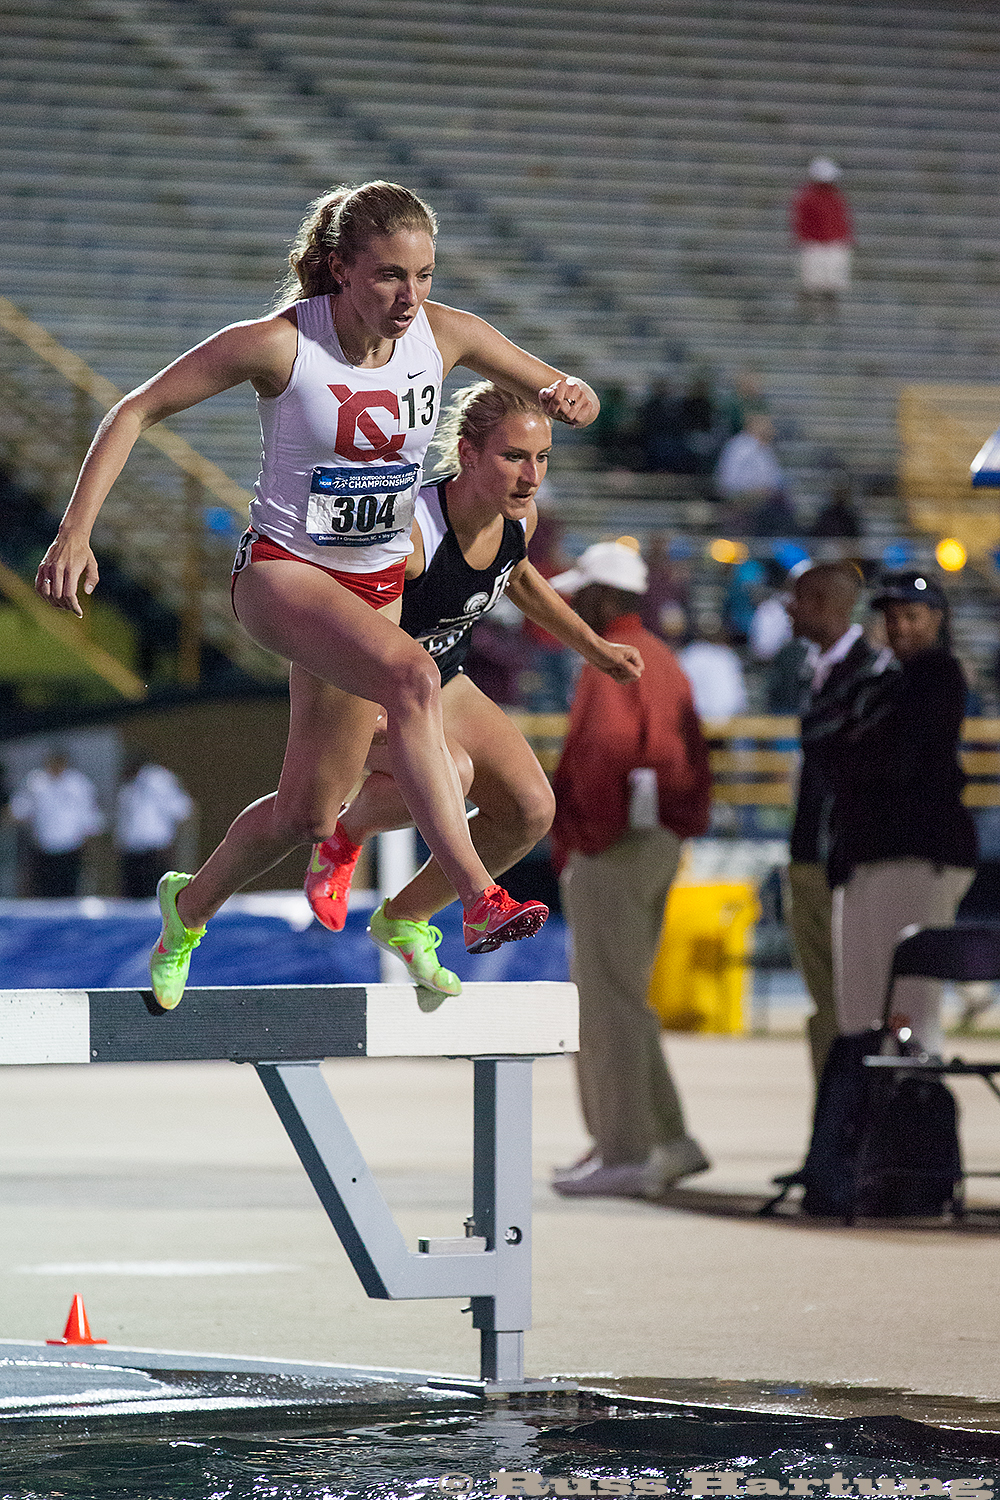 Genna Hartung competing in the steeplechase at the 2013 NCAA Division 1 Regional Championships in Greensboro, South Carolina.